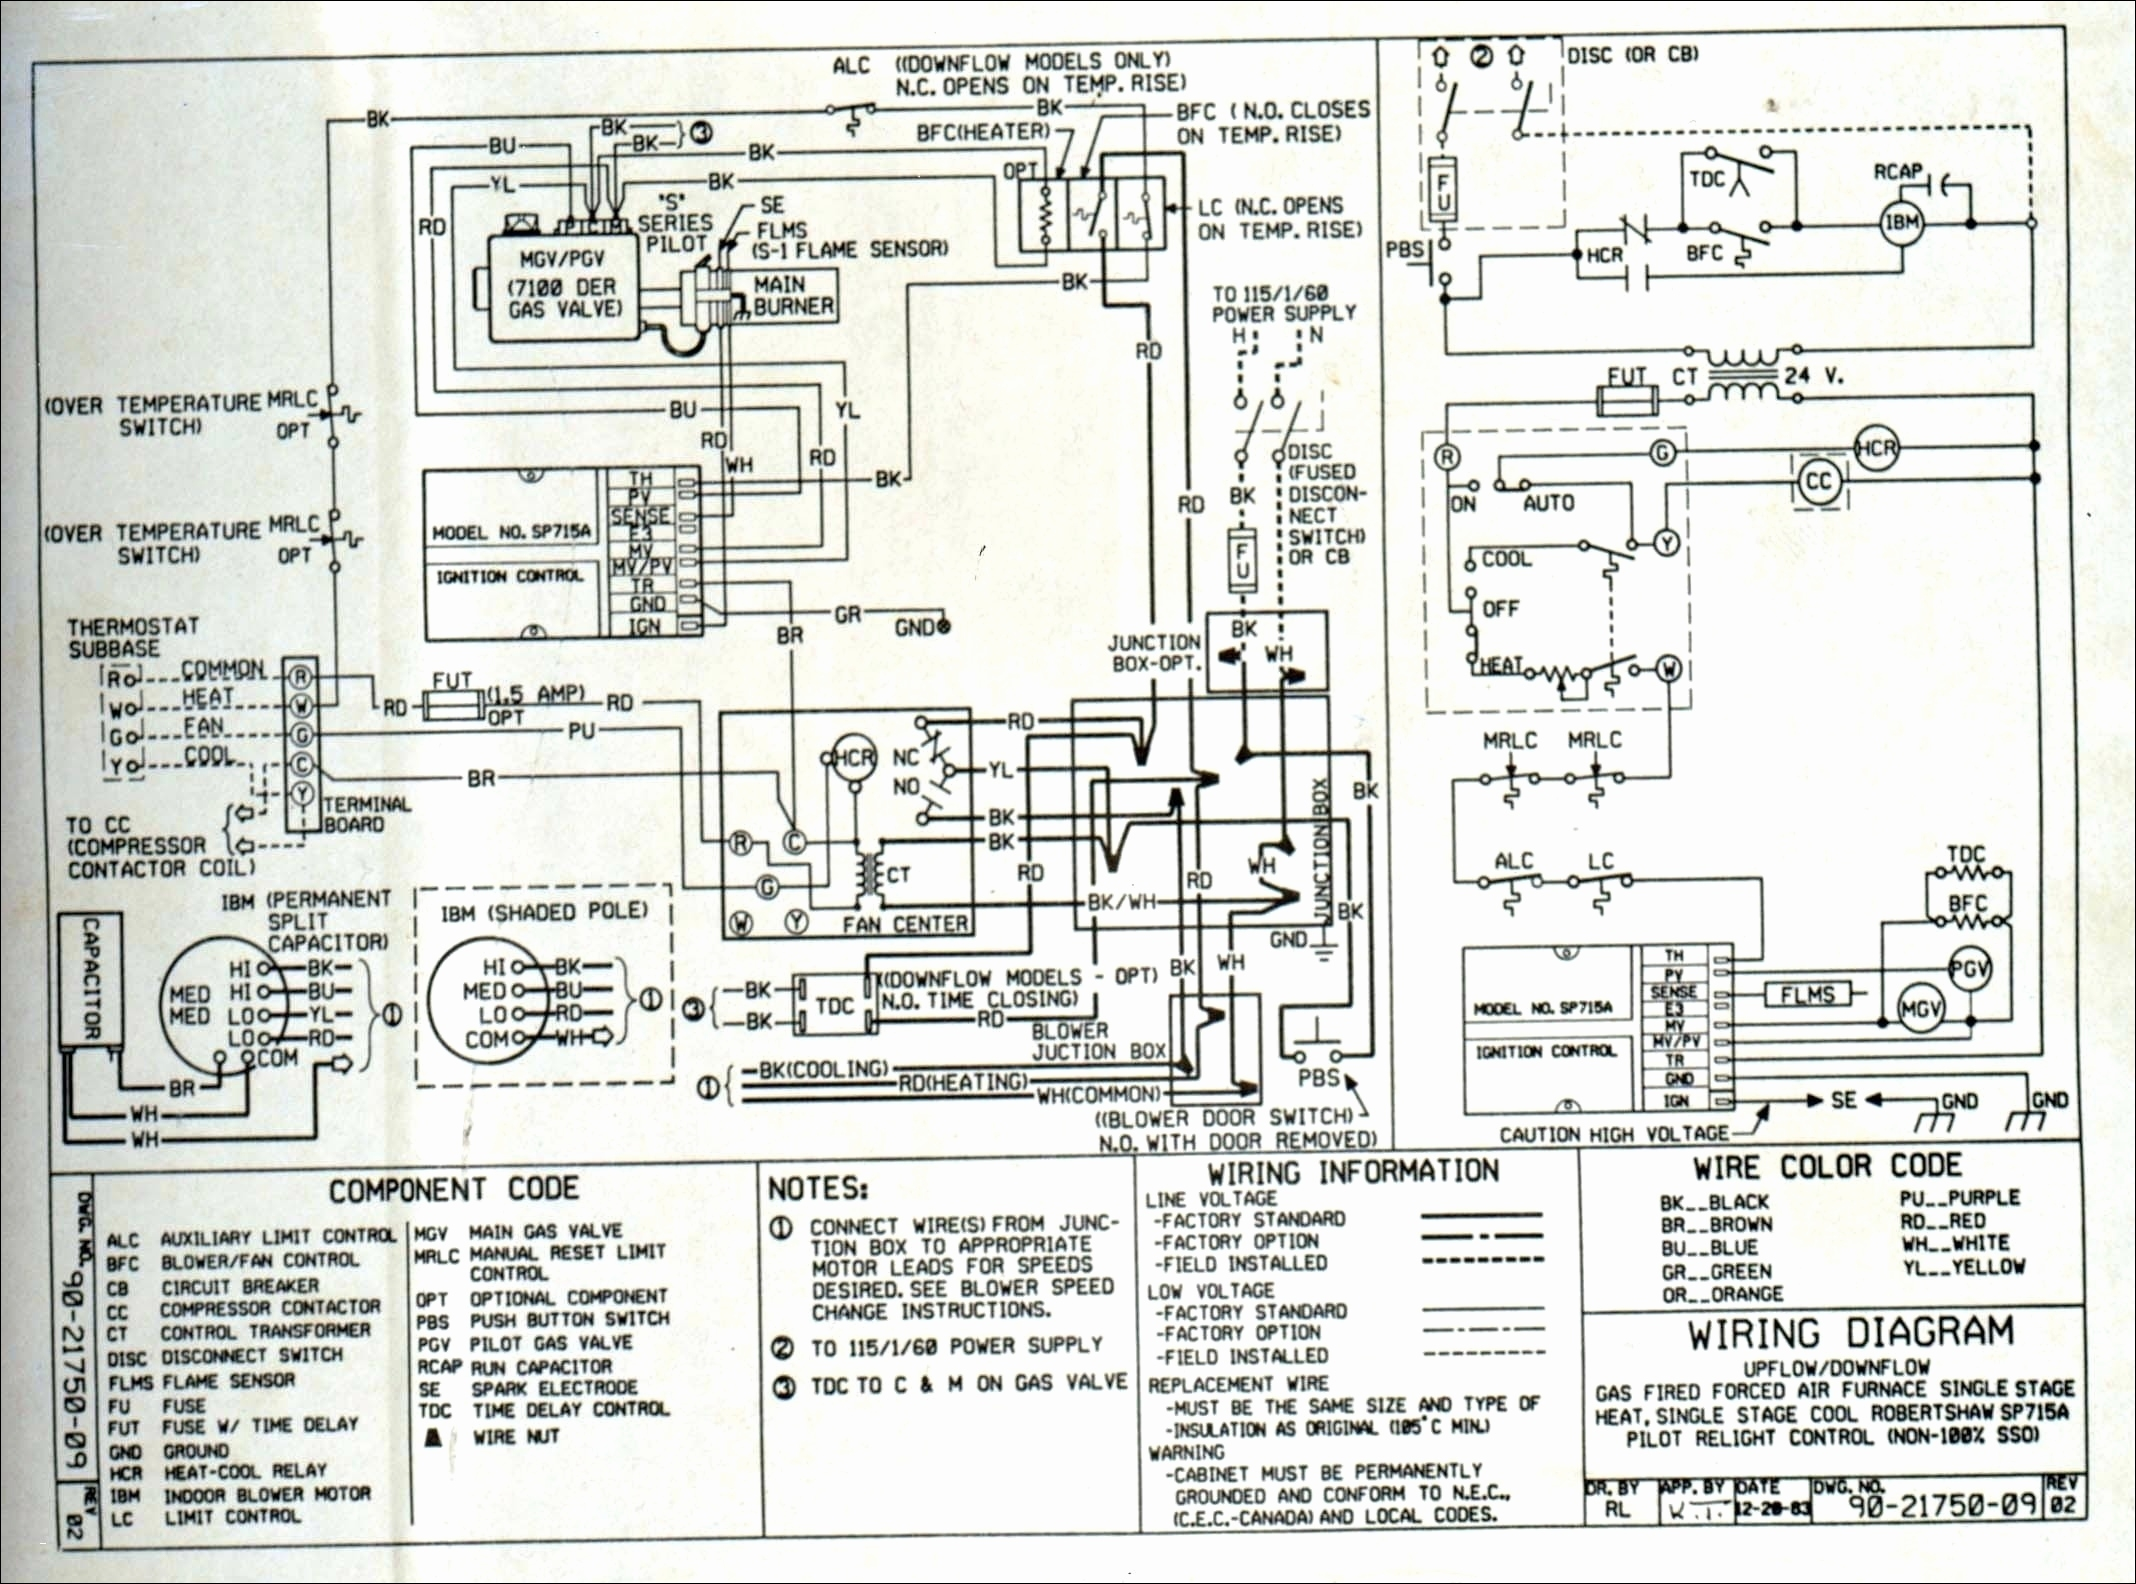 medium resolution of york furnace wiring diagram wiring diagram sheet electric furnace wiring diagram sequencer wiring diagram electric furnace